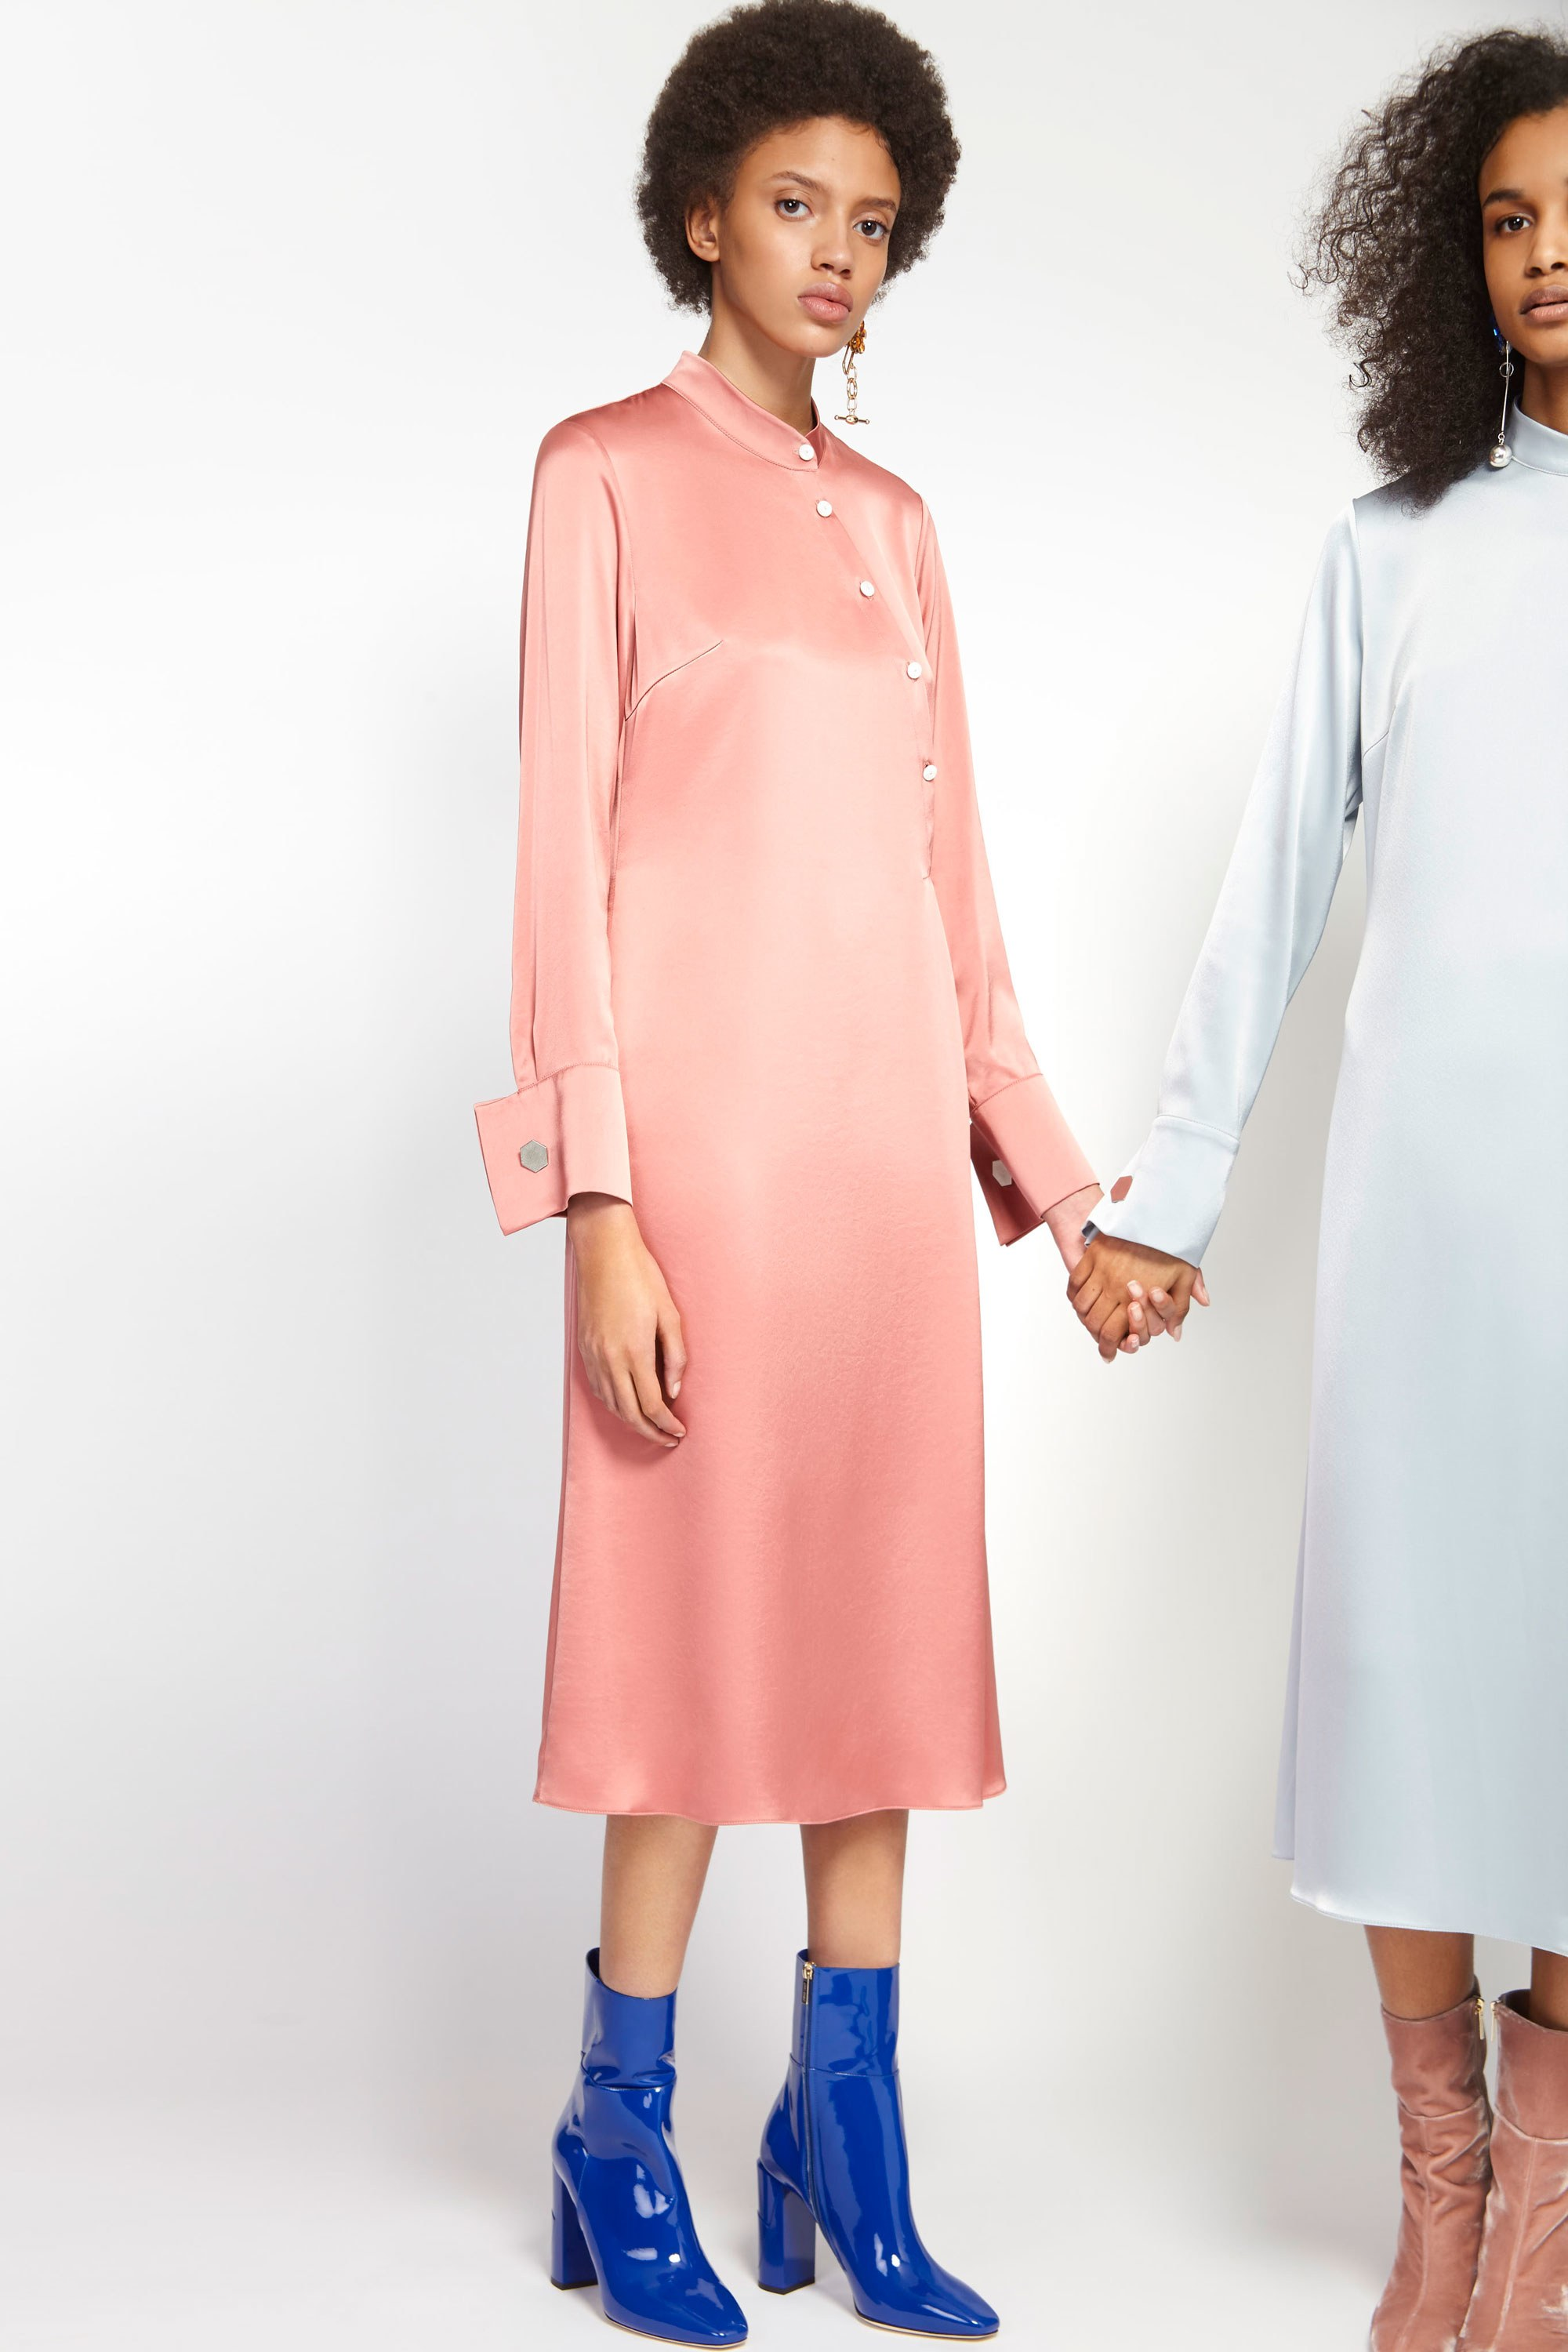 Osman Pre-Fall 2017 - Midi Dress Fall 2017